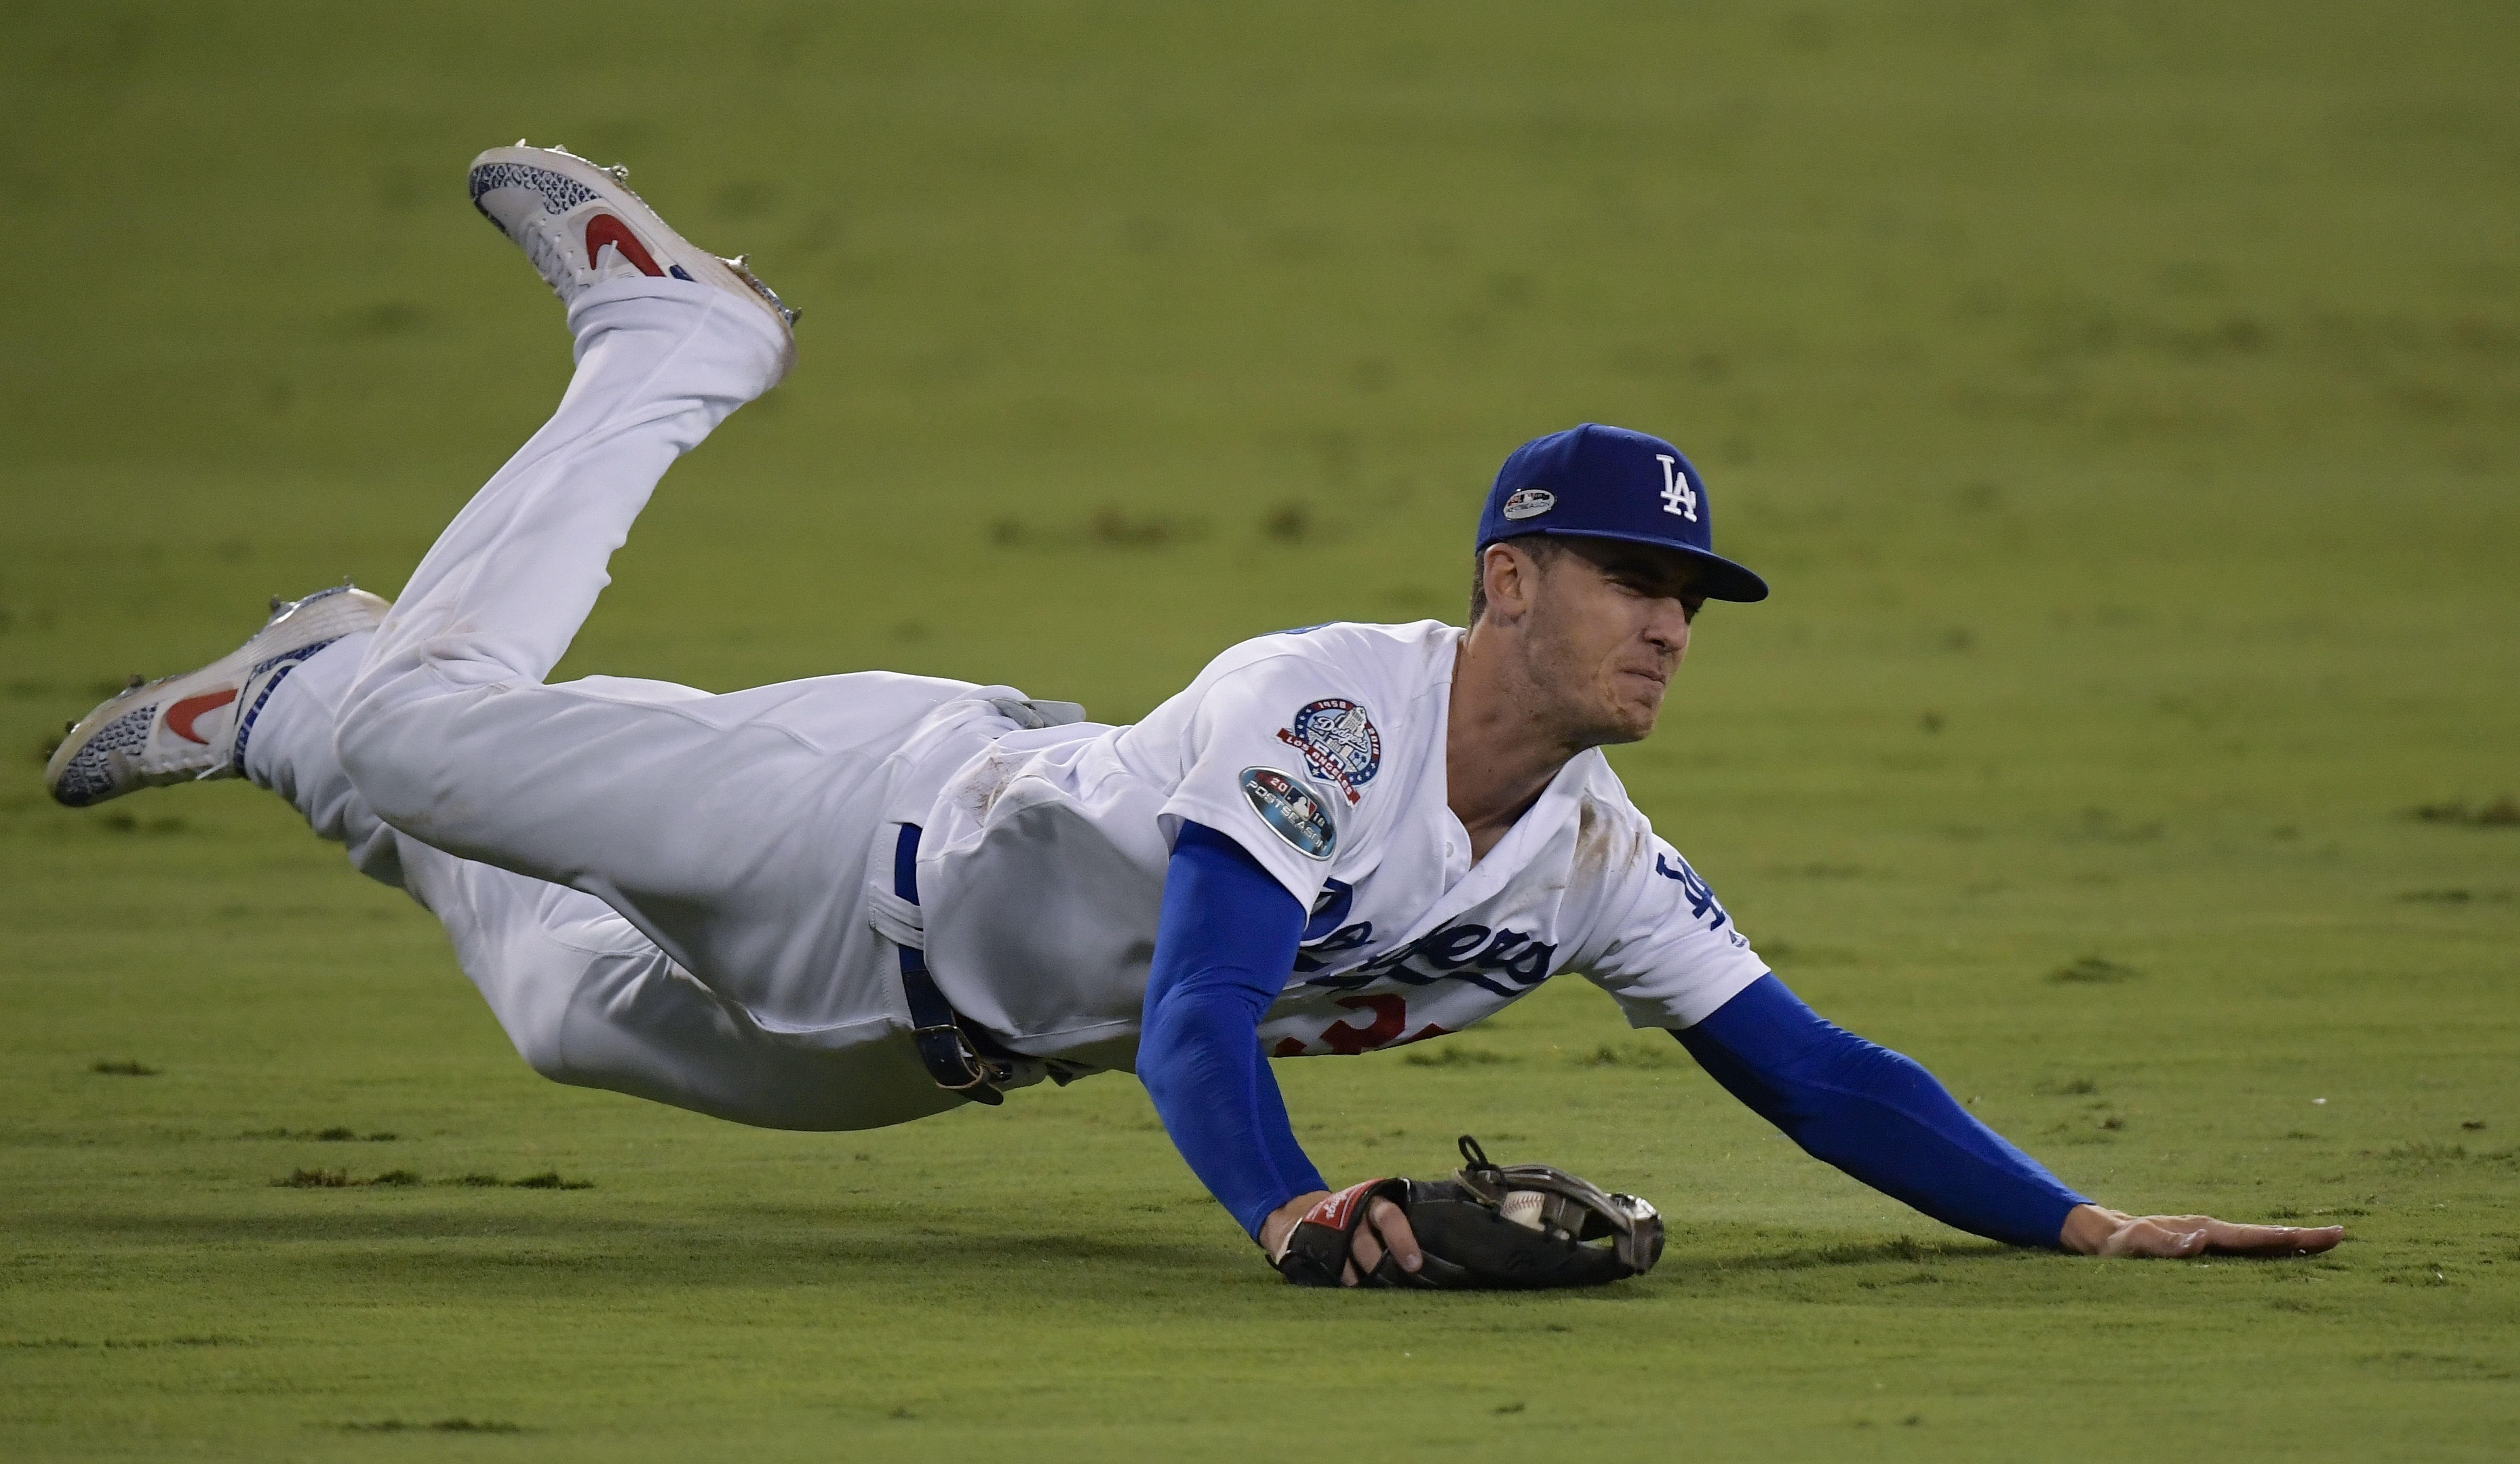 <div class='meta'><div class='origin-logo' data-origin='AP'></div><span class='caption-text' data-credit='AP Photo/Mark J. Terrill'>Dodgers' Cody Bellinger makes a diving catch on a ball hit by Milwaukee Brewers' Lorenzo Cain during the 10th inning of Game 4 of the NLCS.</span></div>